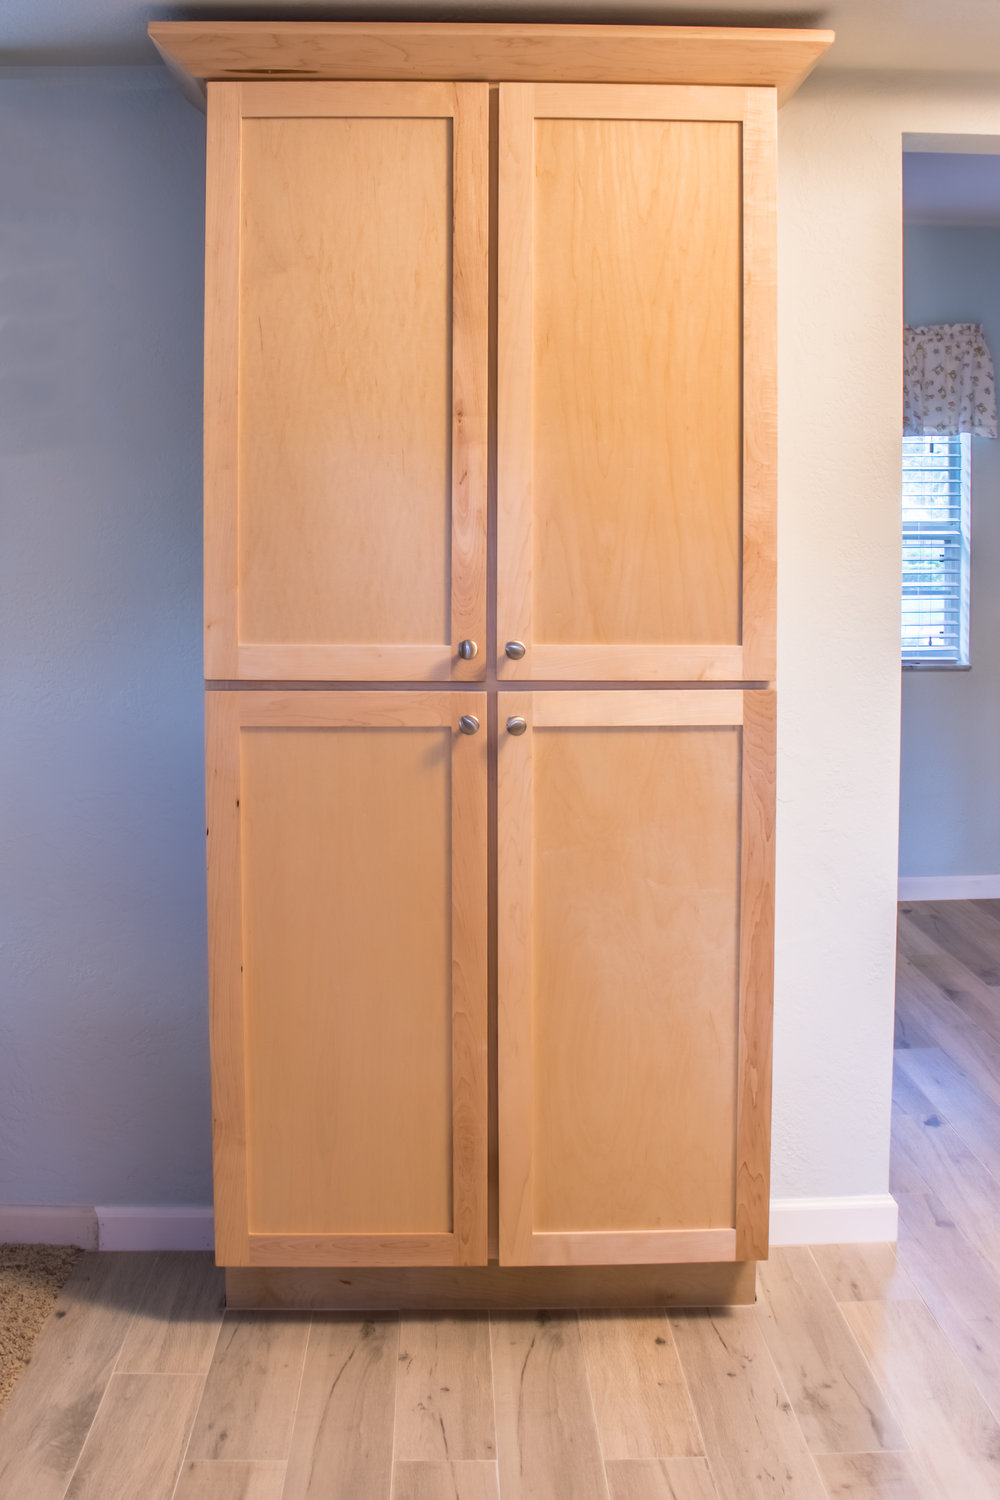 NOTI KITCHEN & BATH120.jpg